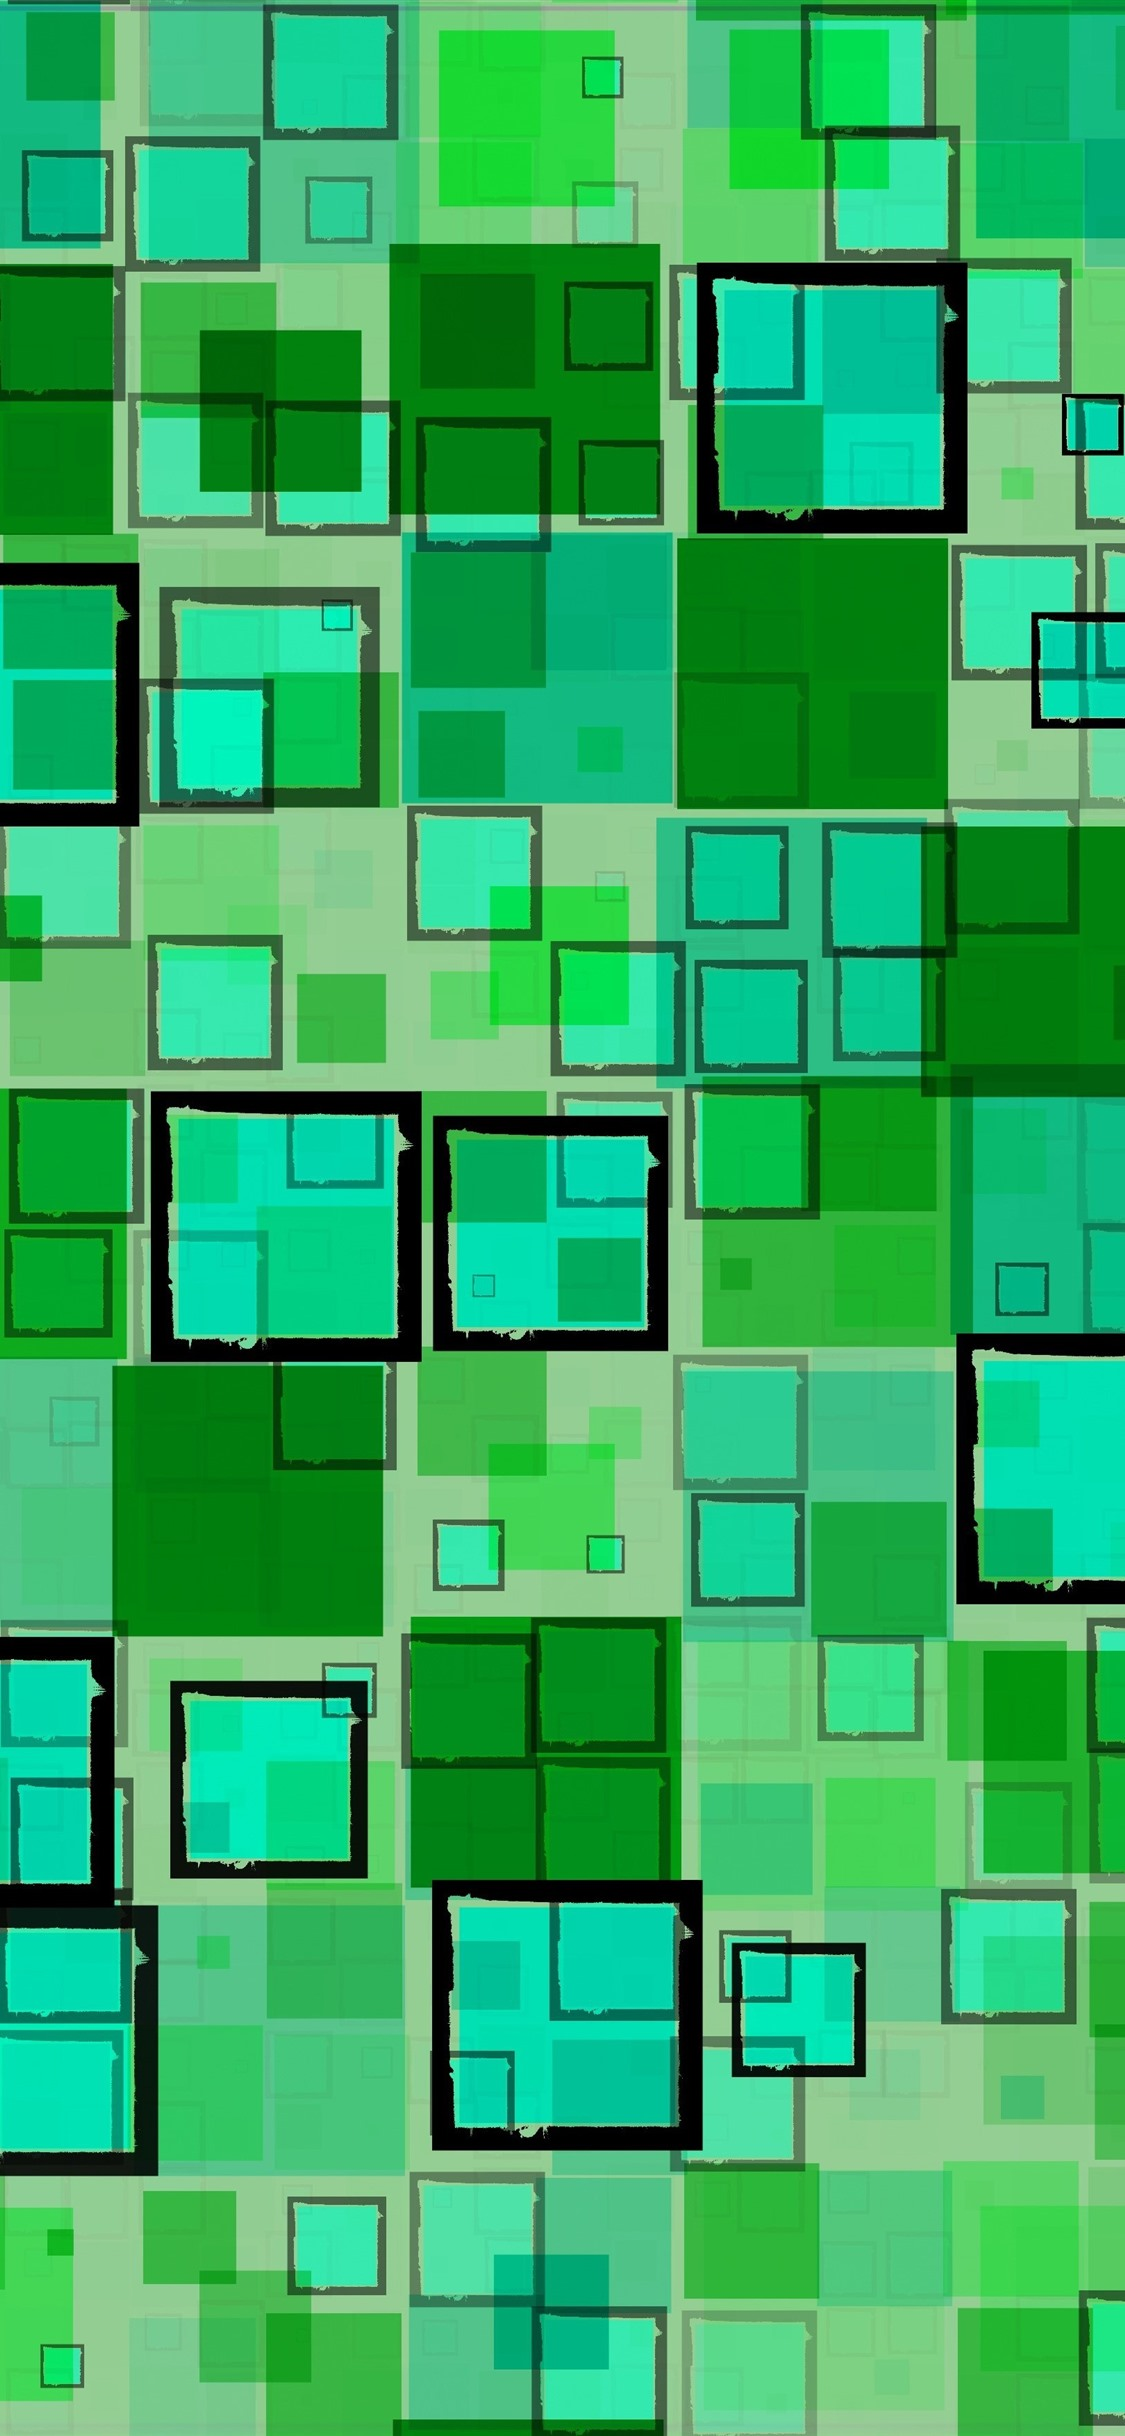 Green Squares Geometric Texture Background 1125x2436